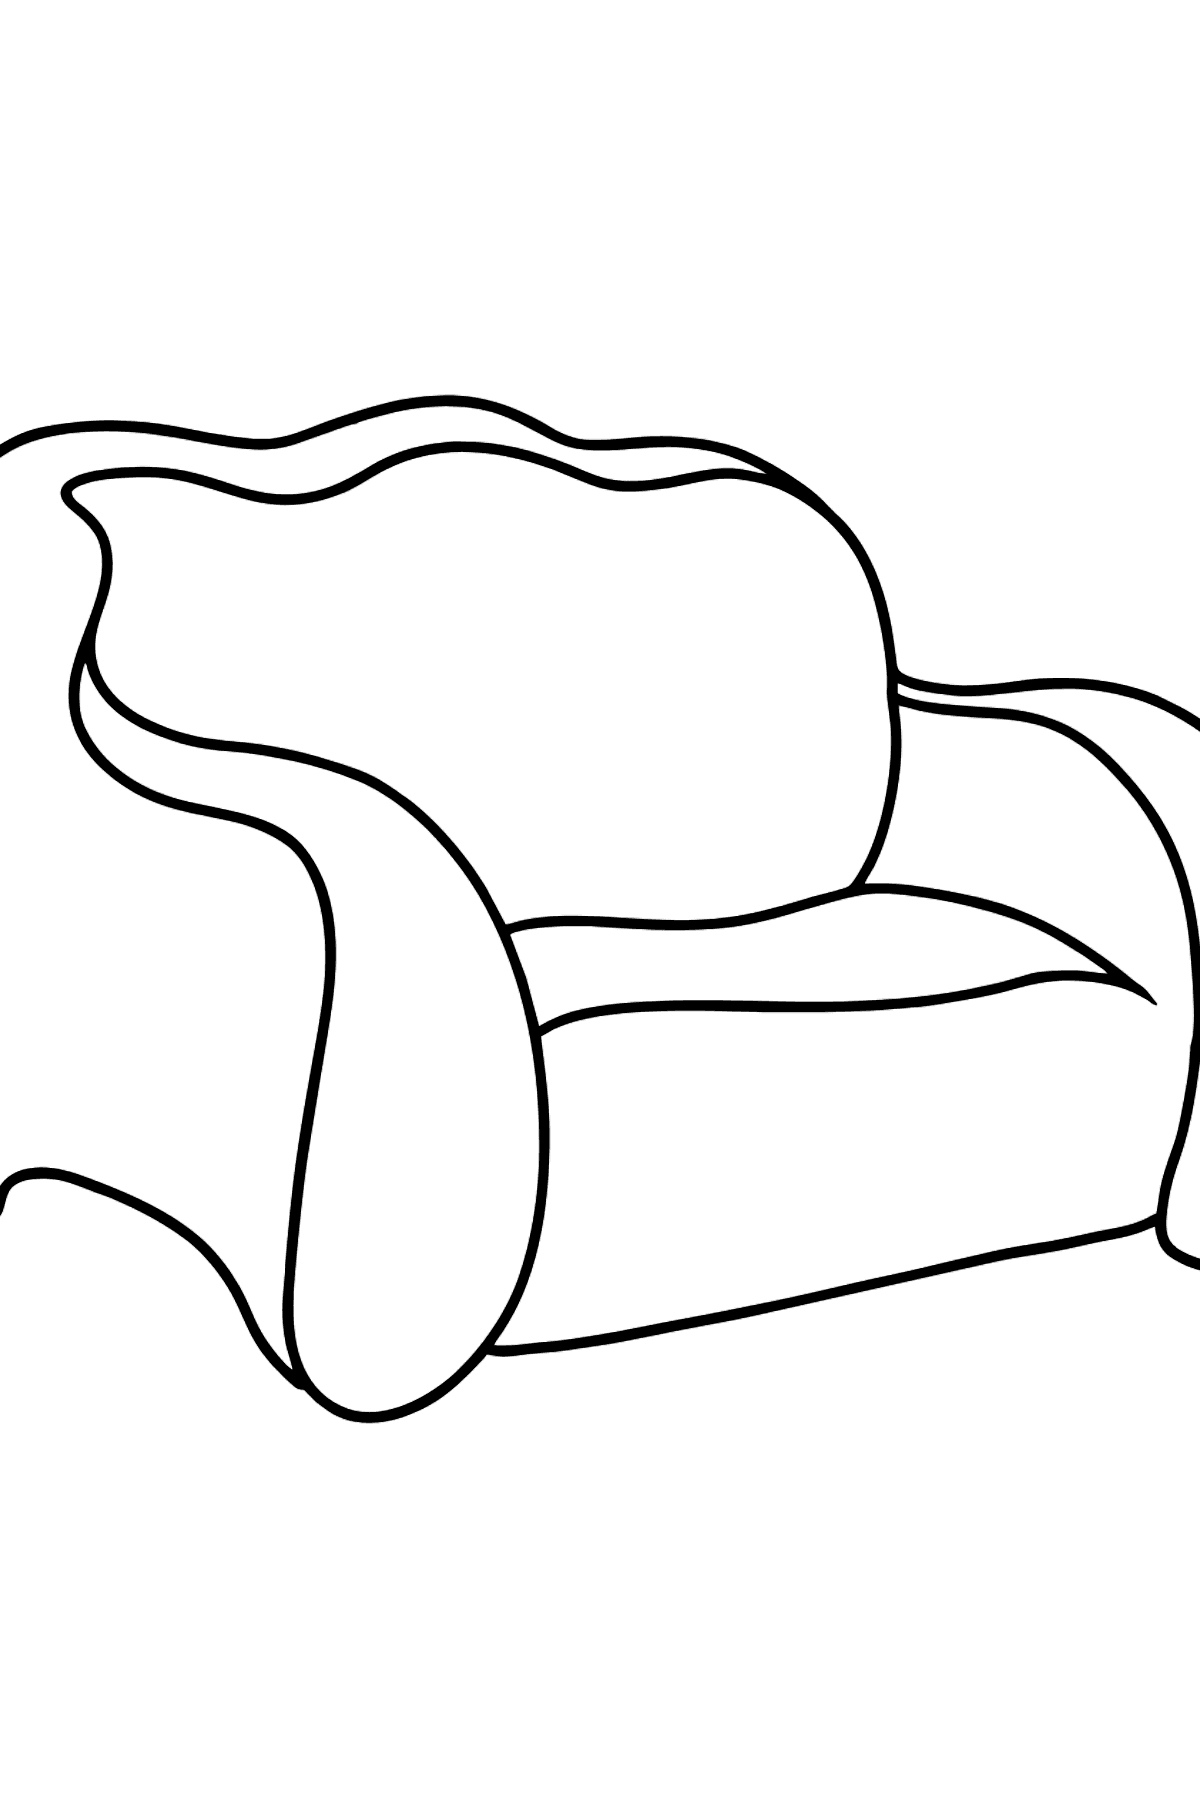 Pull Out Sofa coloring page - Coloring Pages for Kids